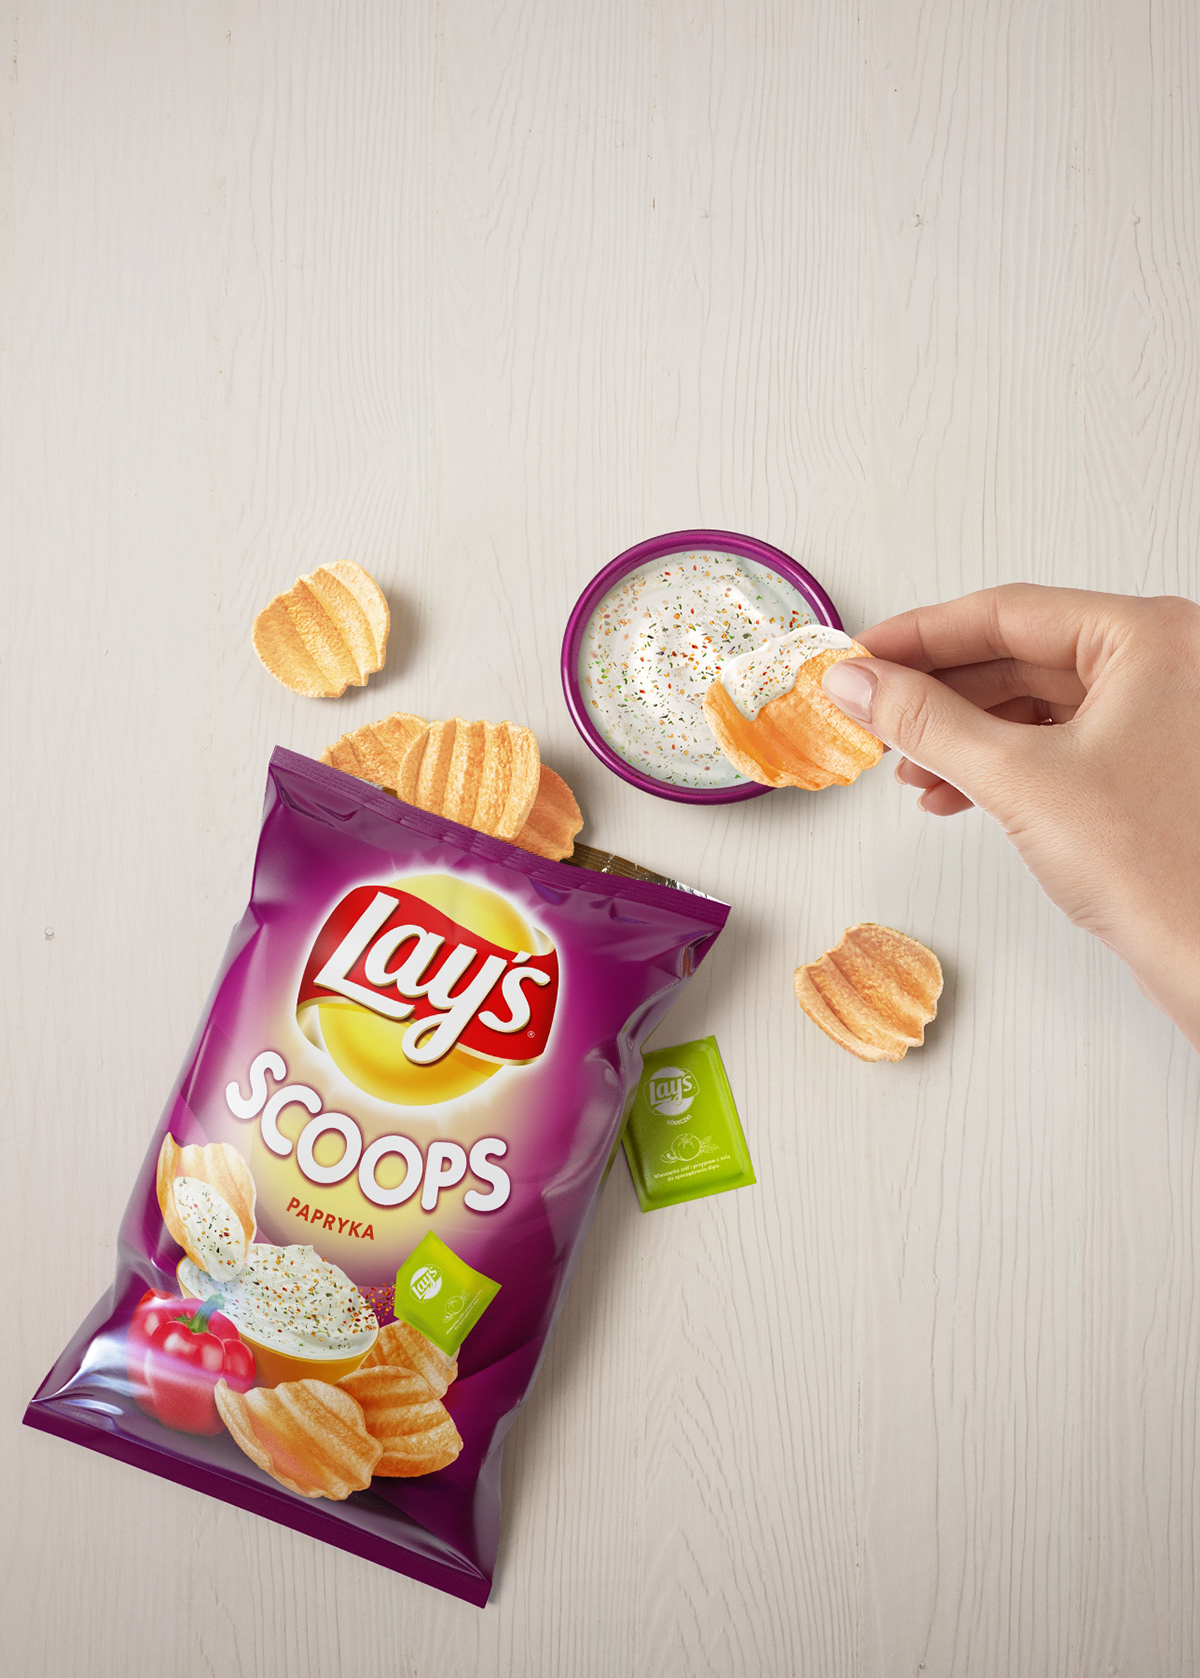 CGI Food  retouching  Lays 3ds MAX vray advertisement scoops